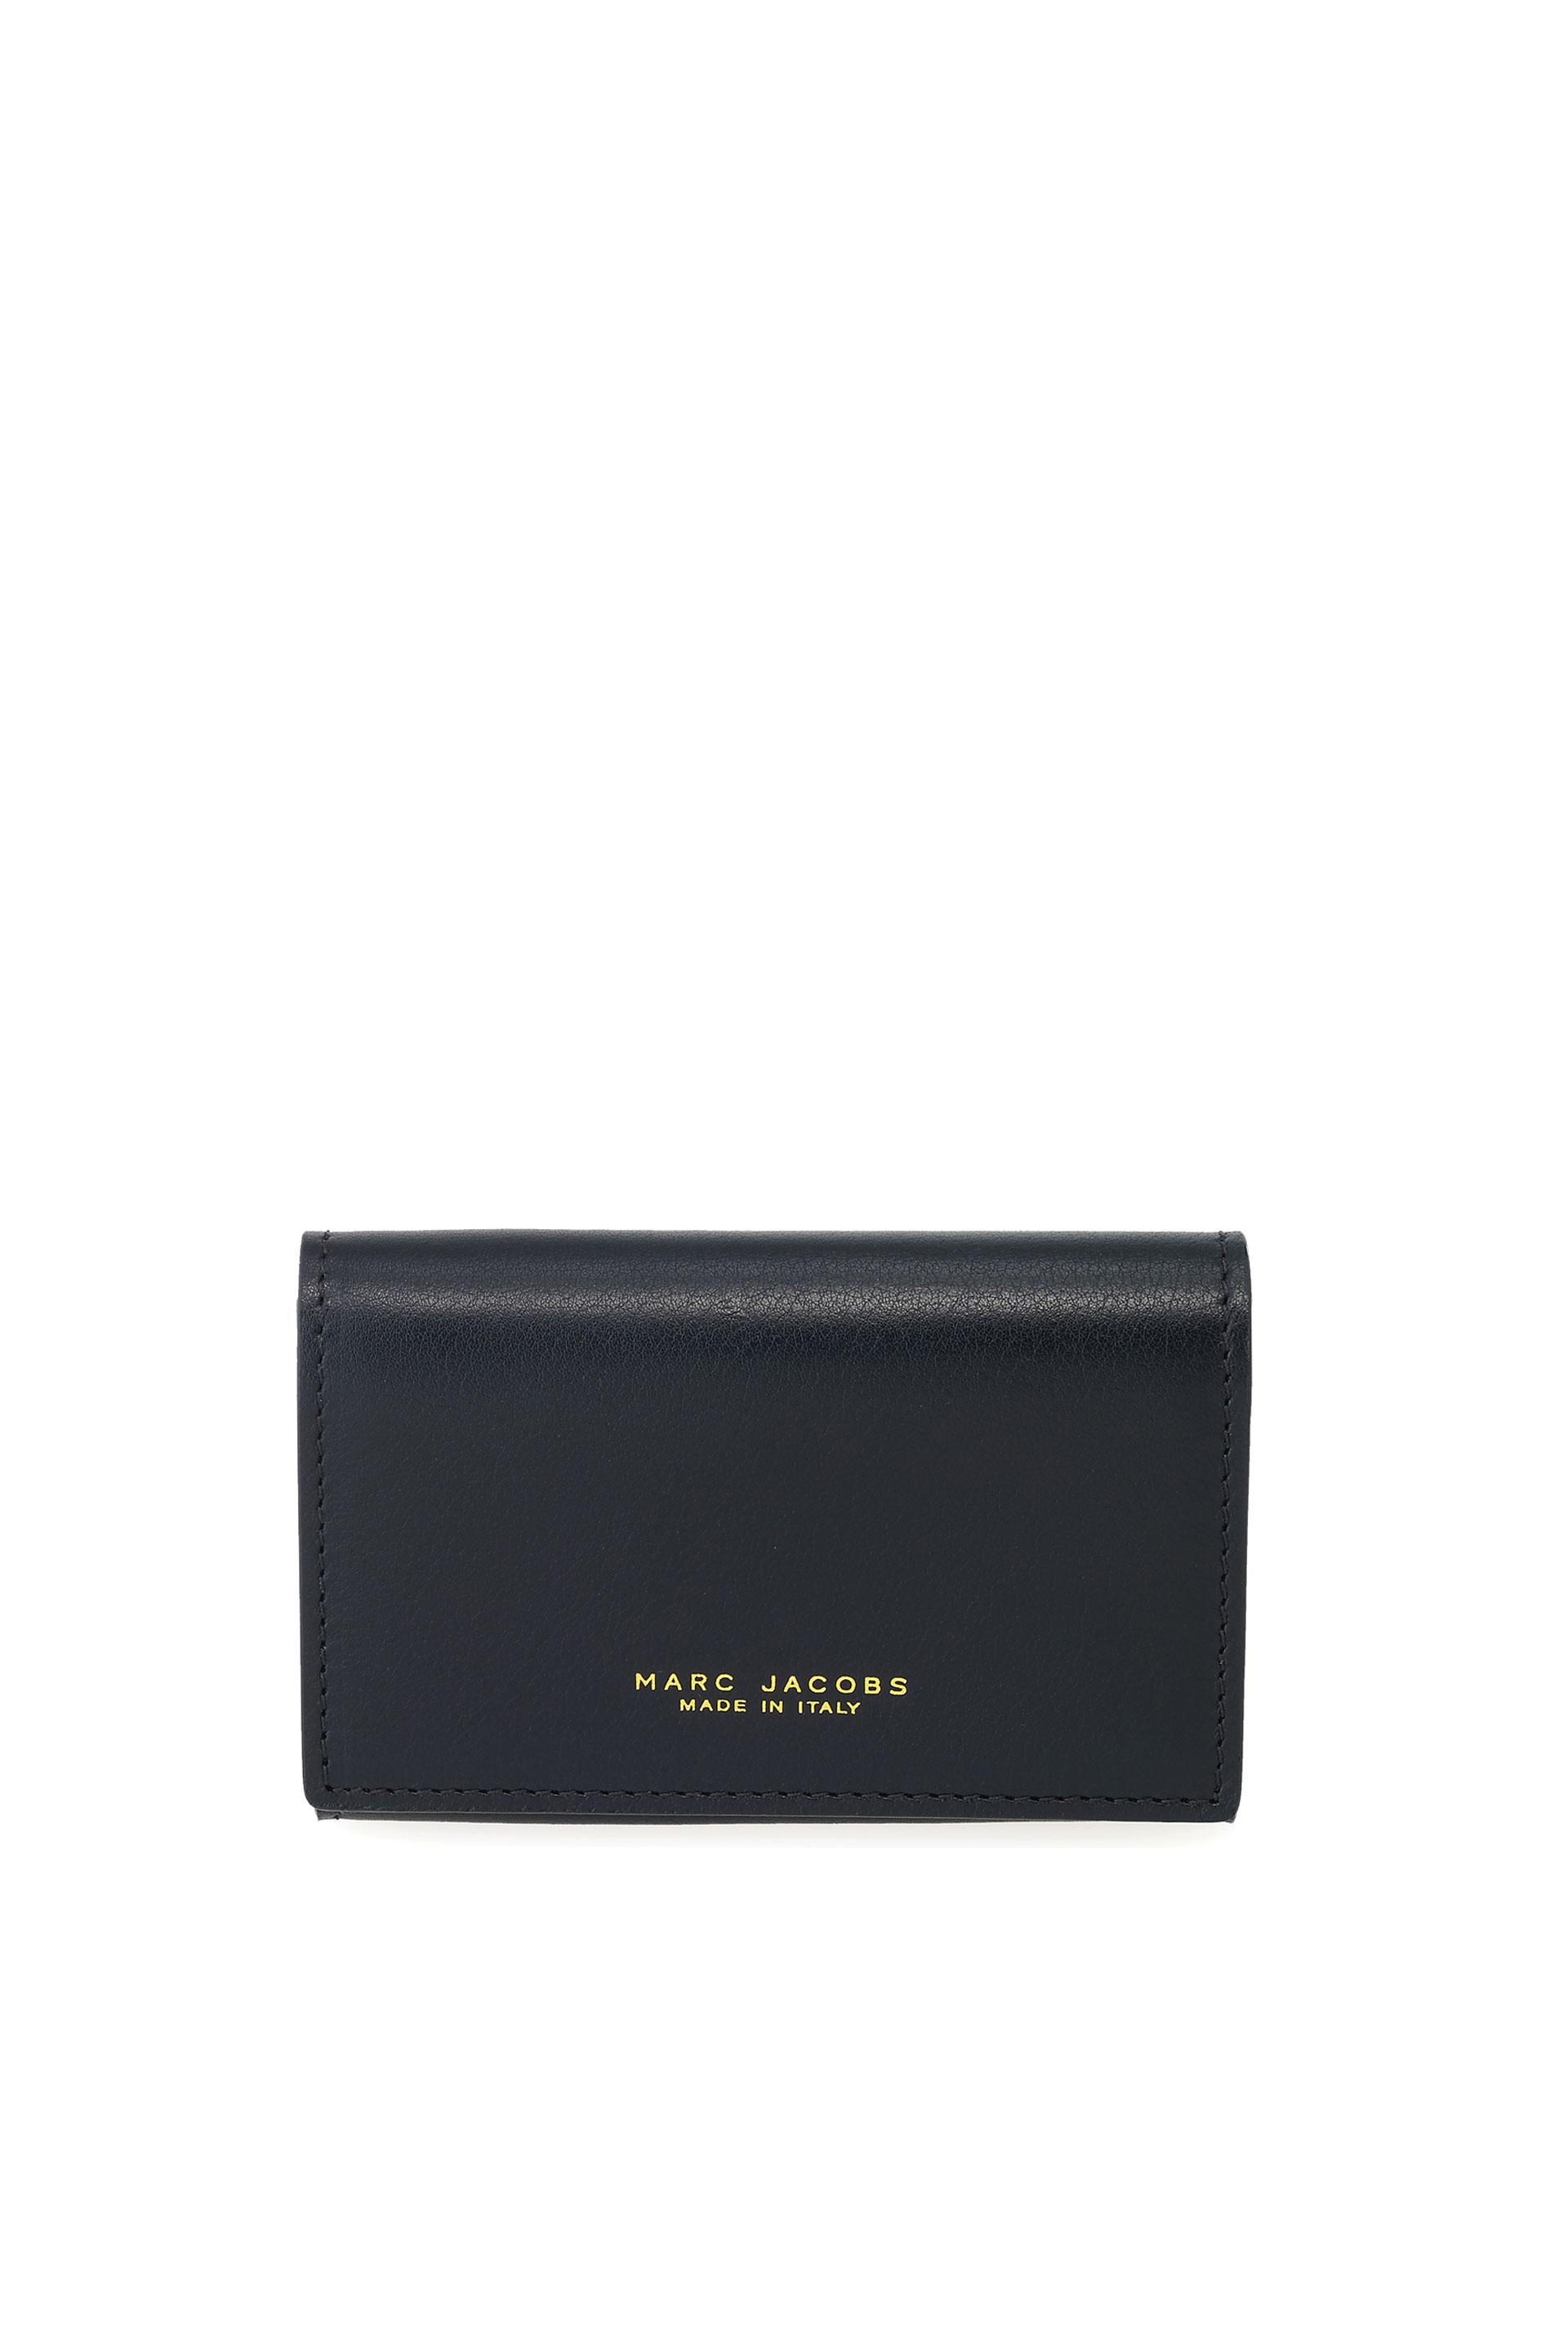 MARC JACOBS BI COLOR BUSINESS CARD HOLDER, BLACK/MILITARY GREEN WITH ...